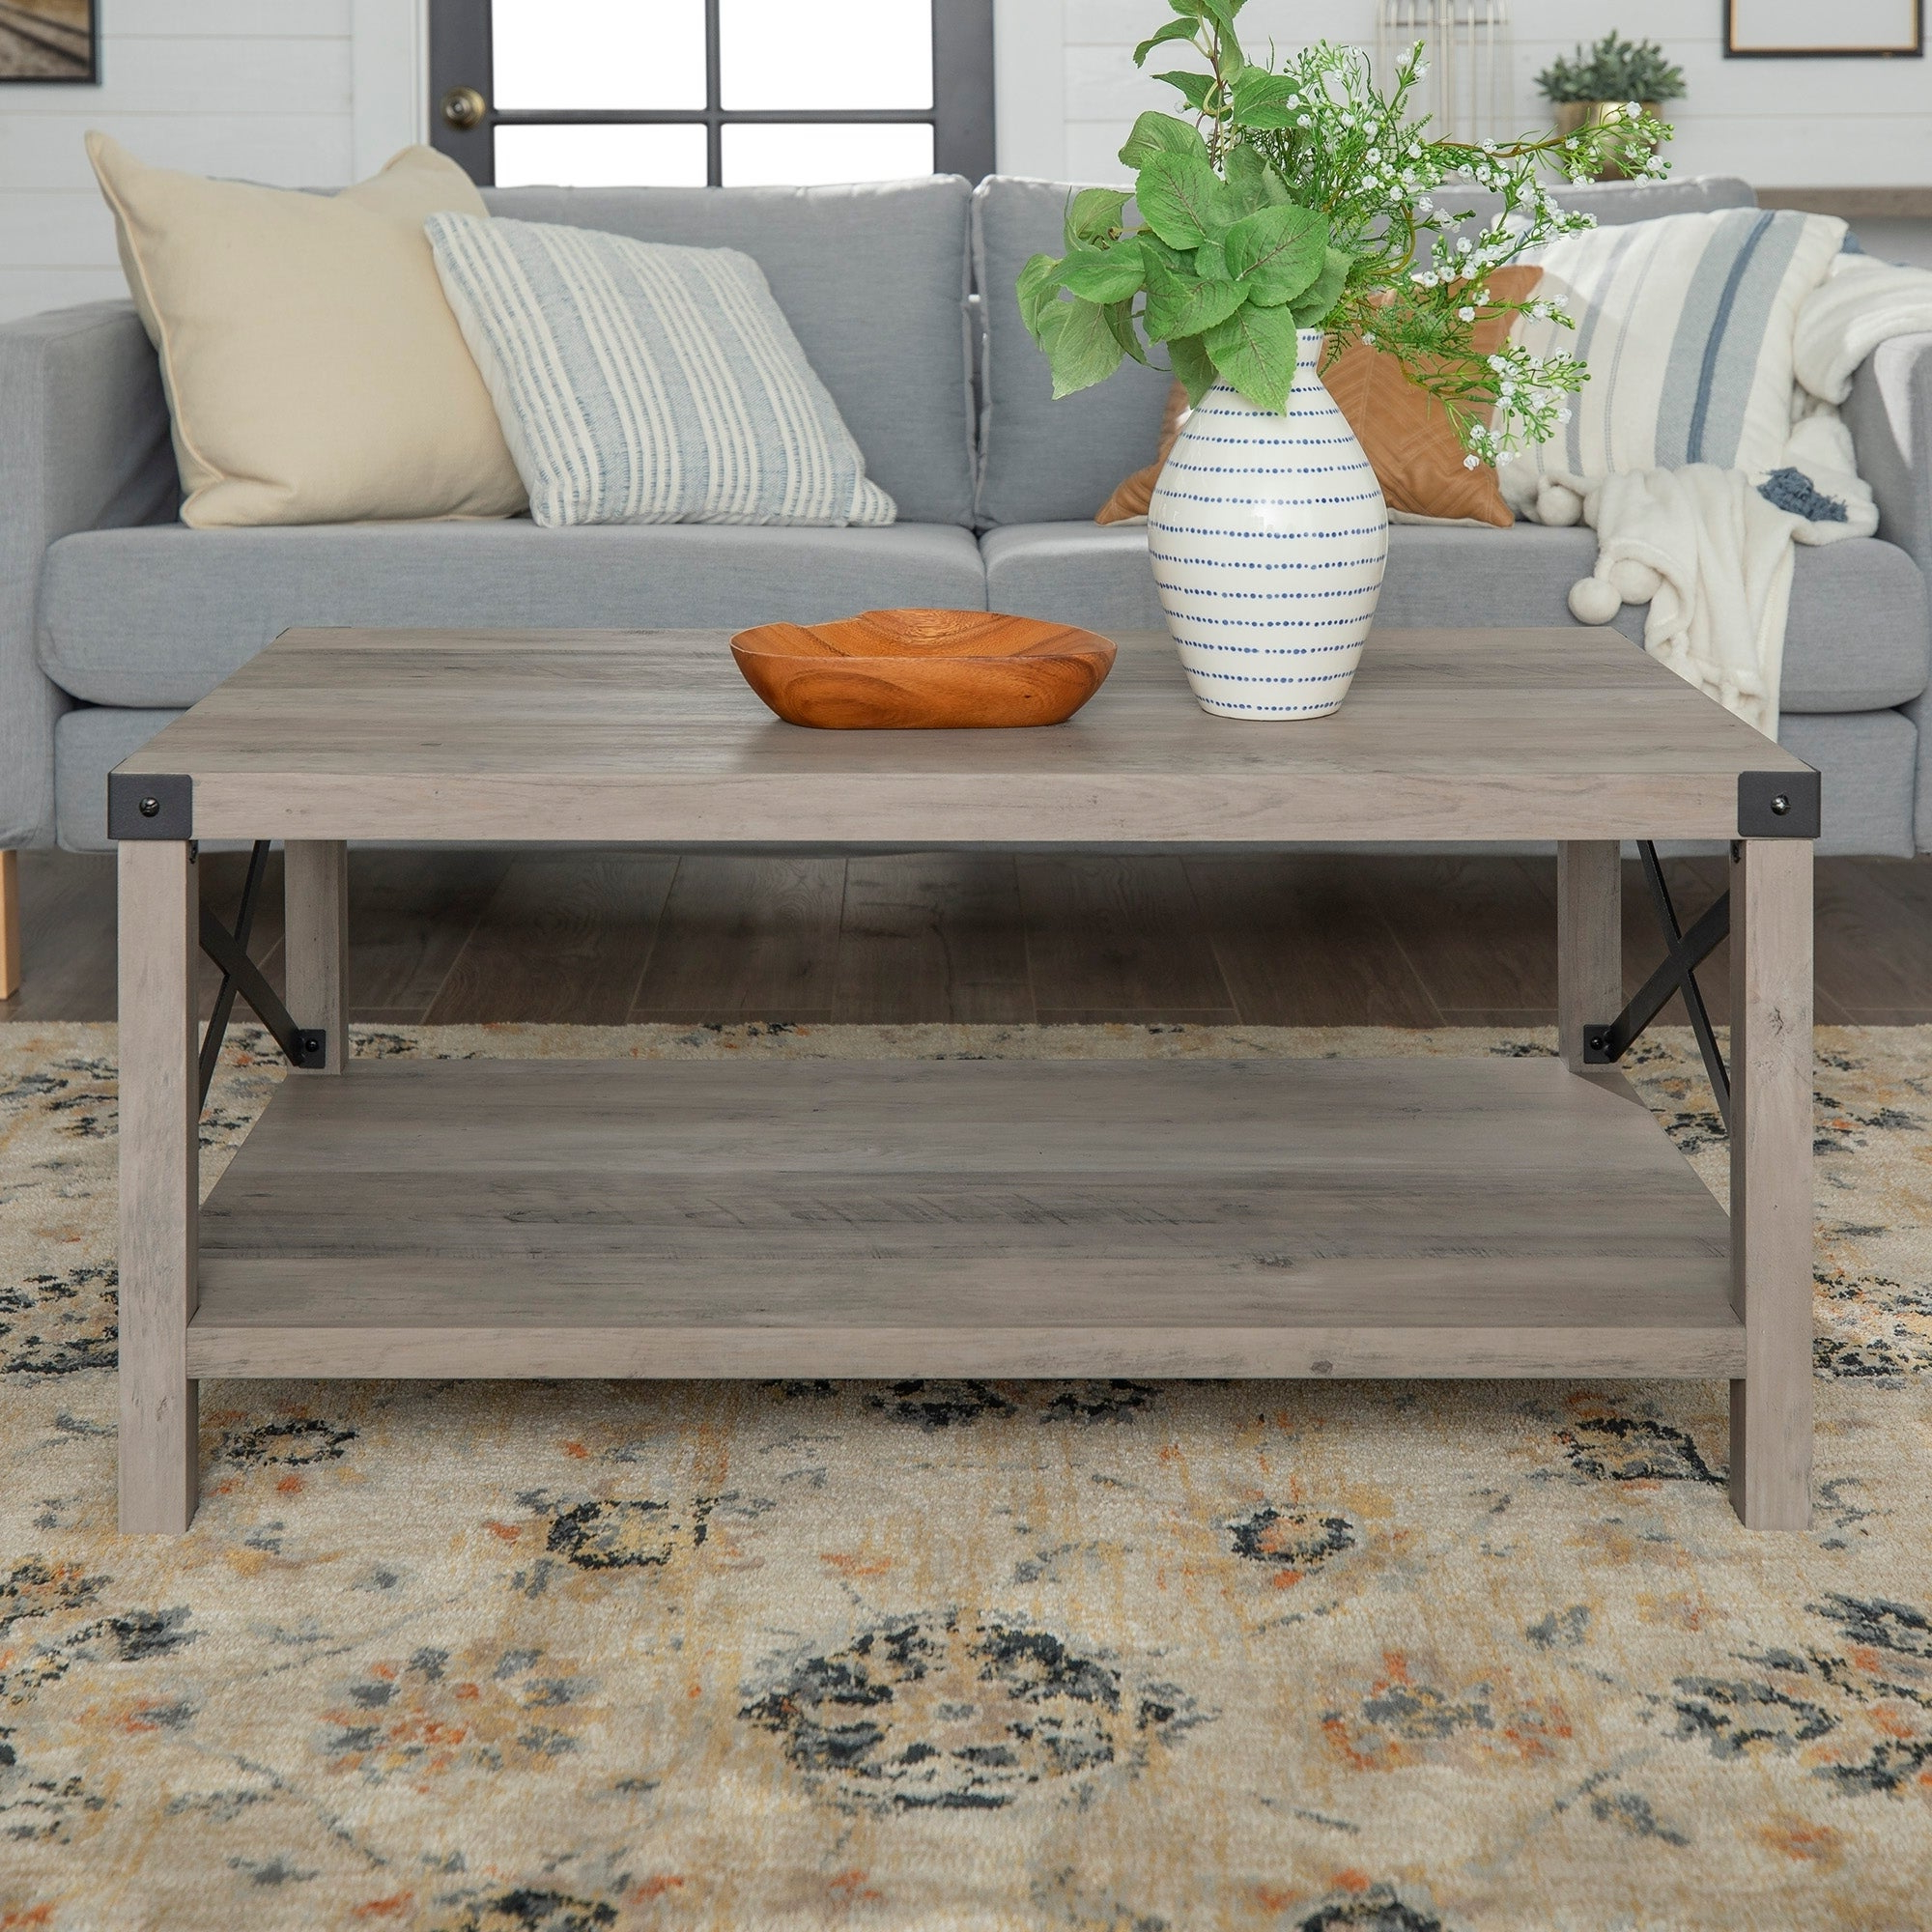 The Gray Barn Kujawa Metal X Coffee Table – 40 X 22 X 18h Pertaining To Best And Newest The Gray Barn Kujawa Metal X Coffee Tables – 40 X 22 X 18h (View 6 of 20)